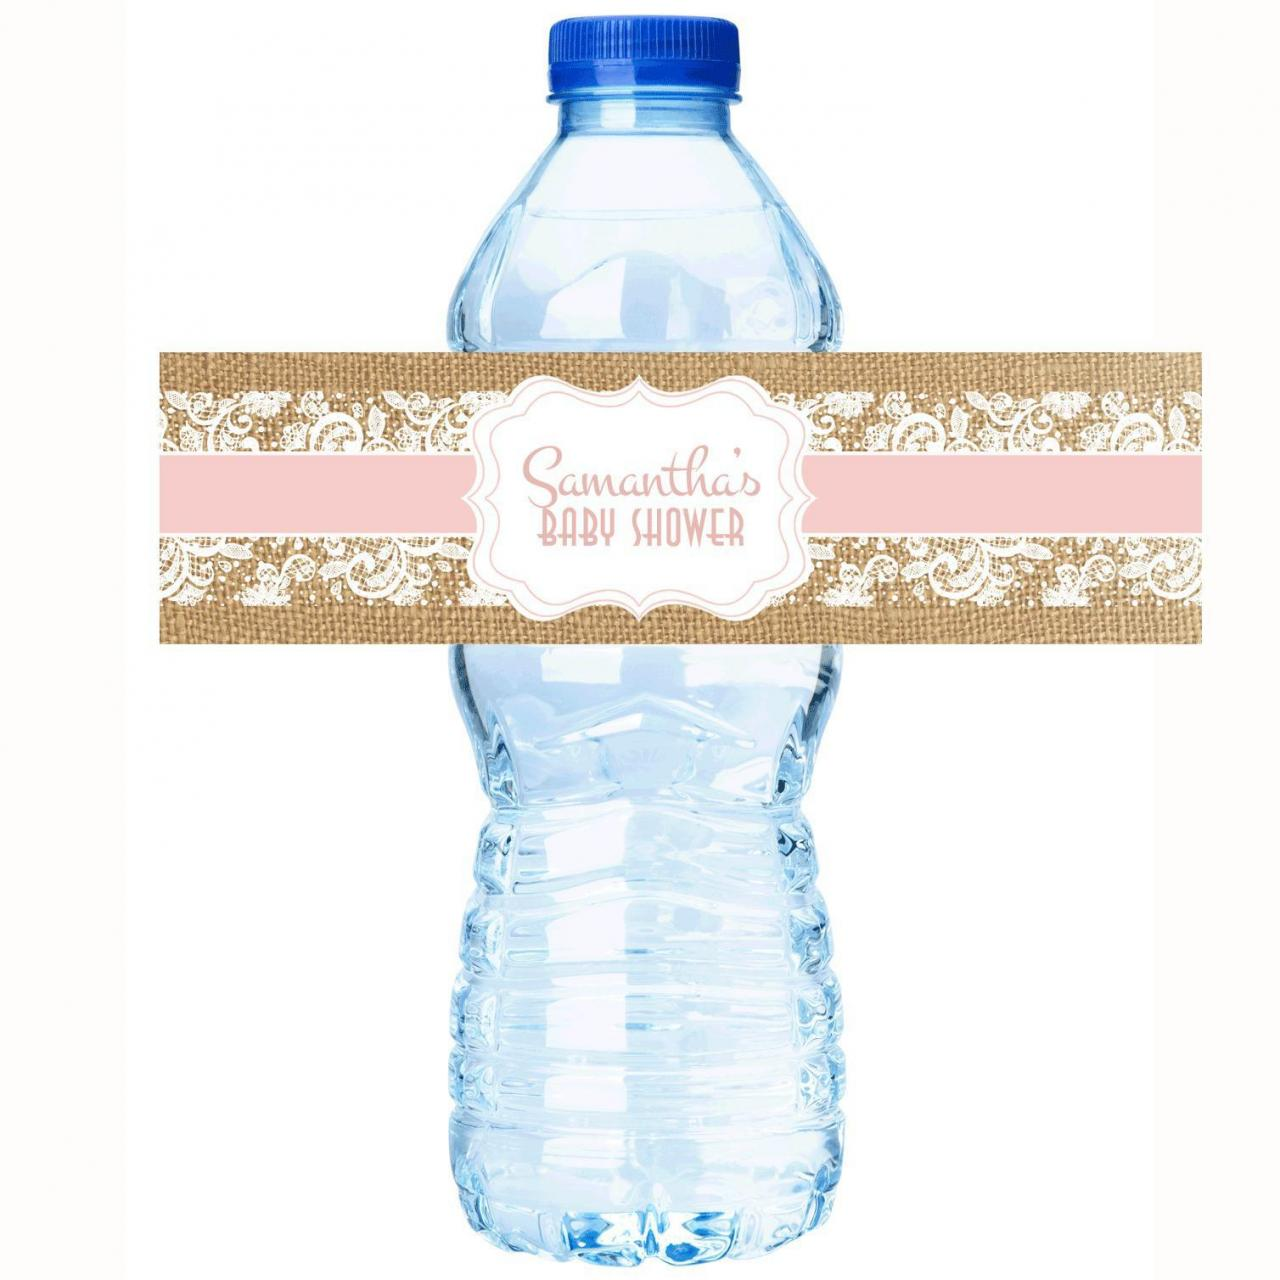 China Personalized Water Bottle Labels - Rustic Baby Shower Collection on sale